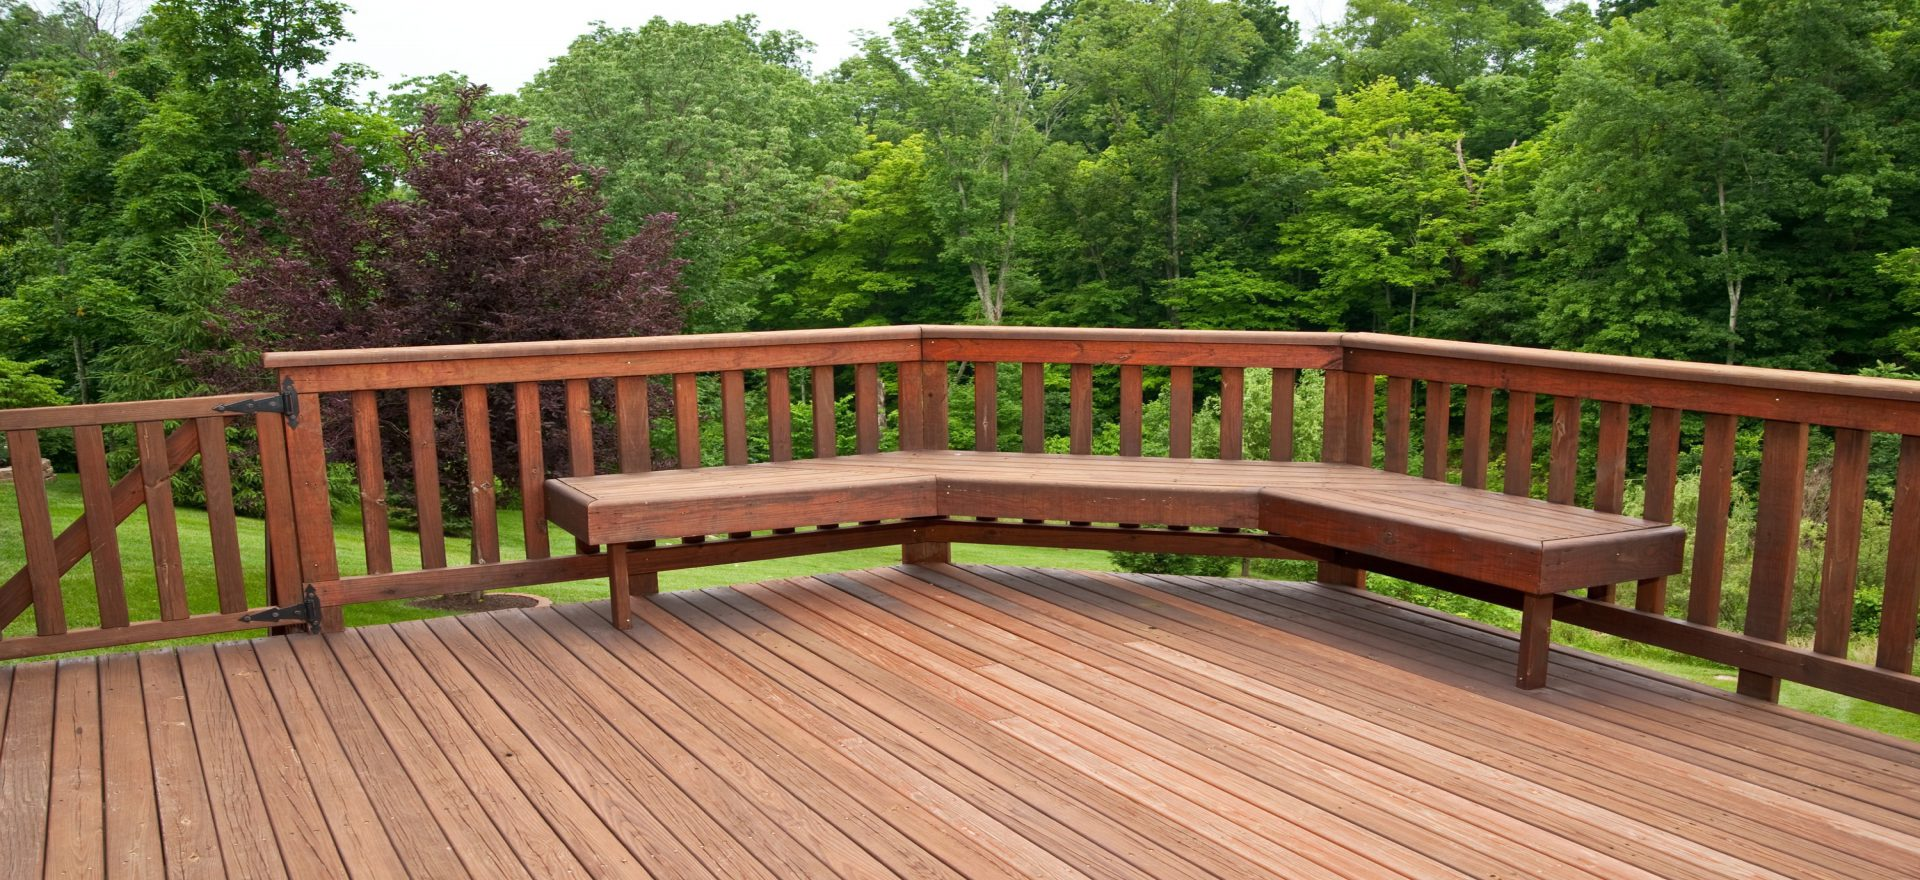 Deck and Fence 6